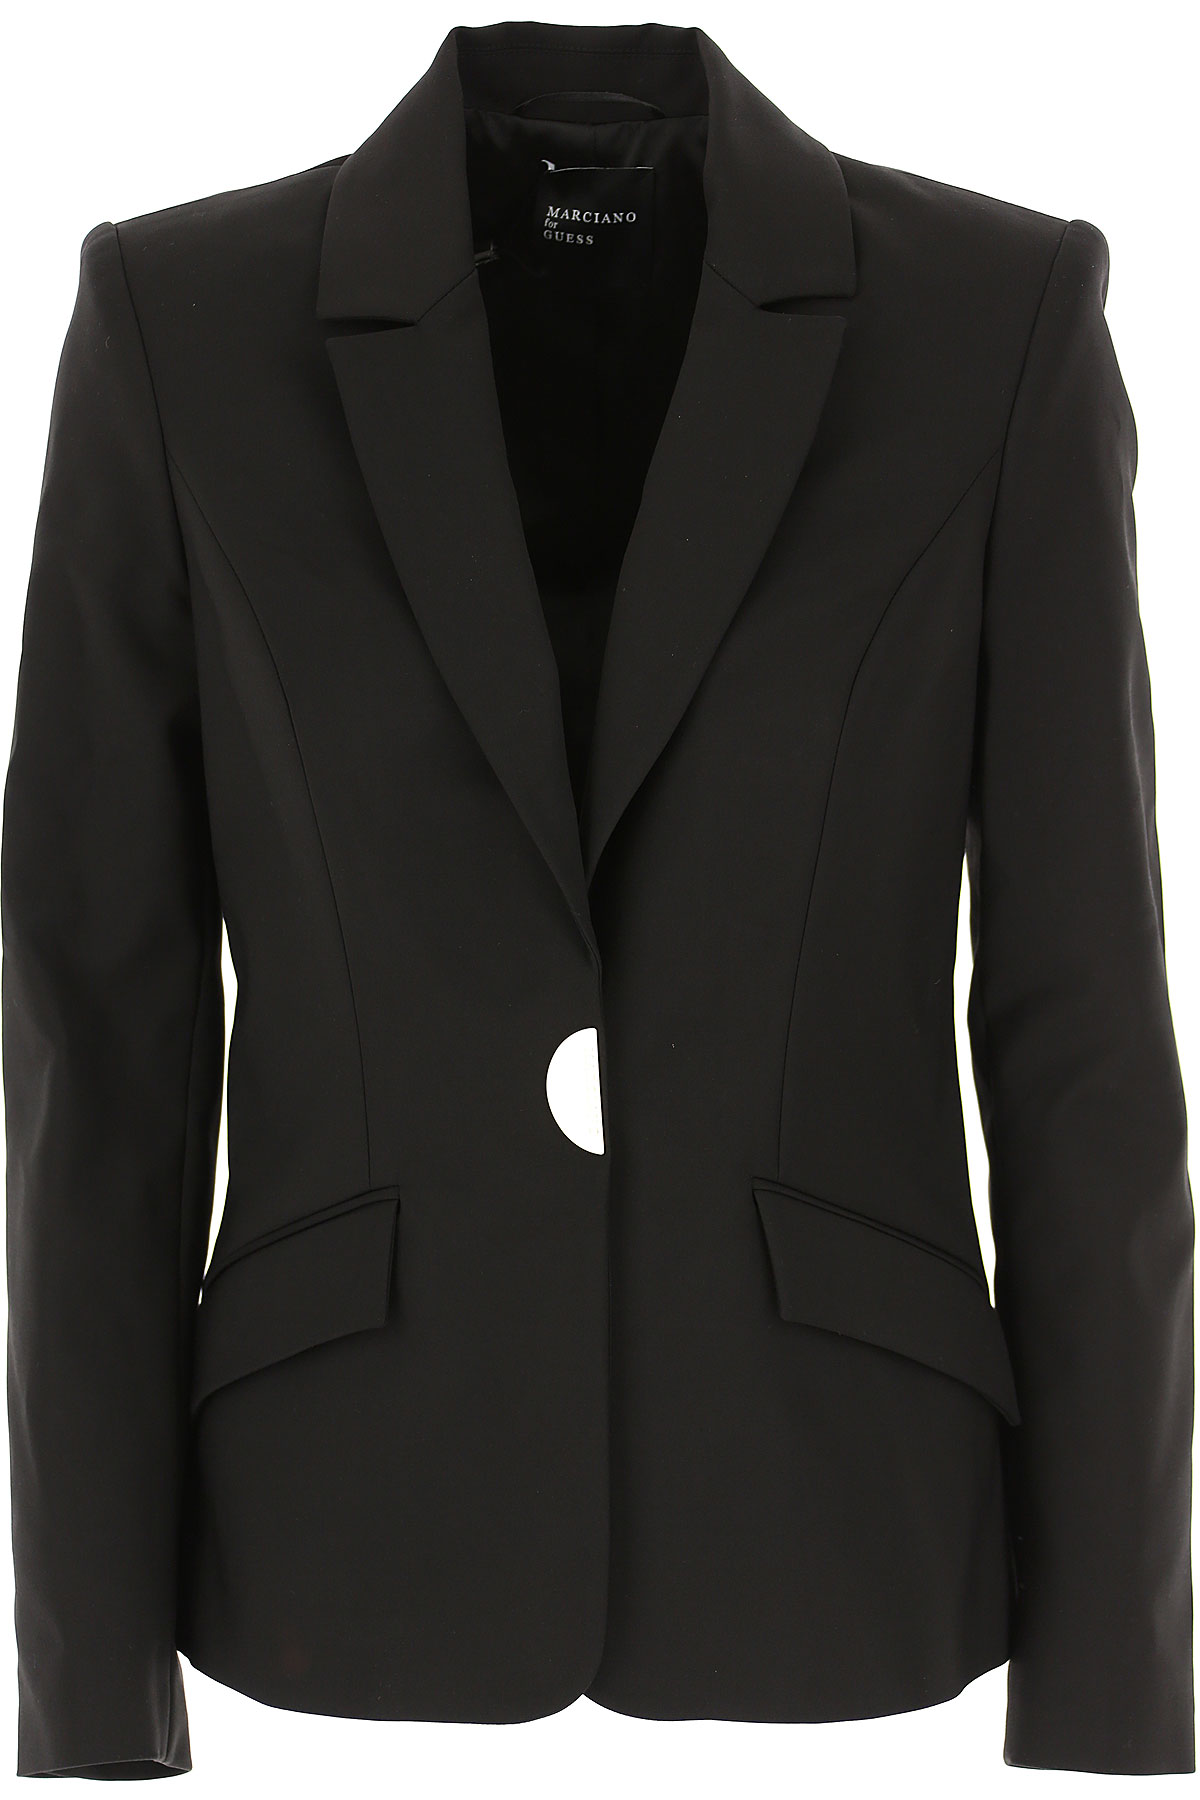 Guess Blazer for Women On Sale, Black, Cotton, 2019, 6 8